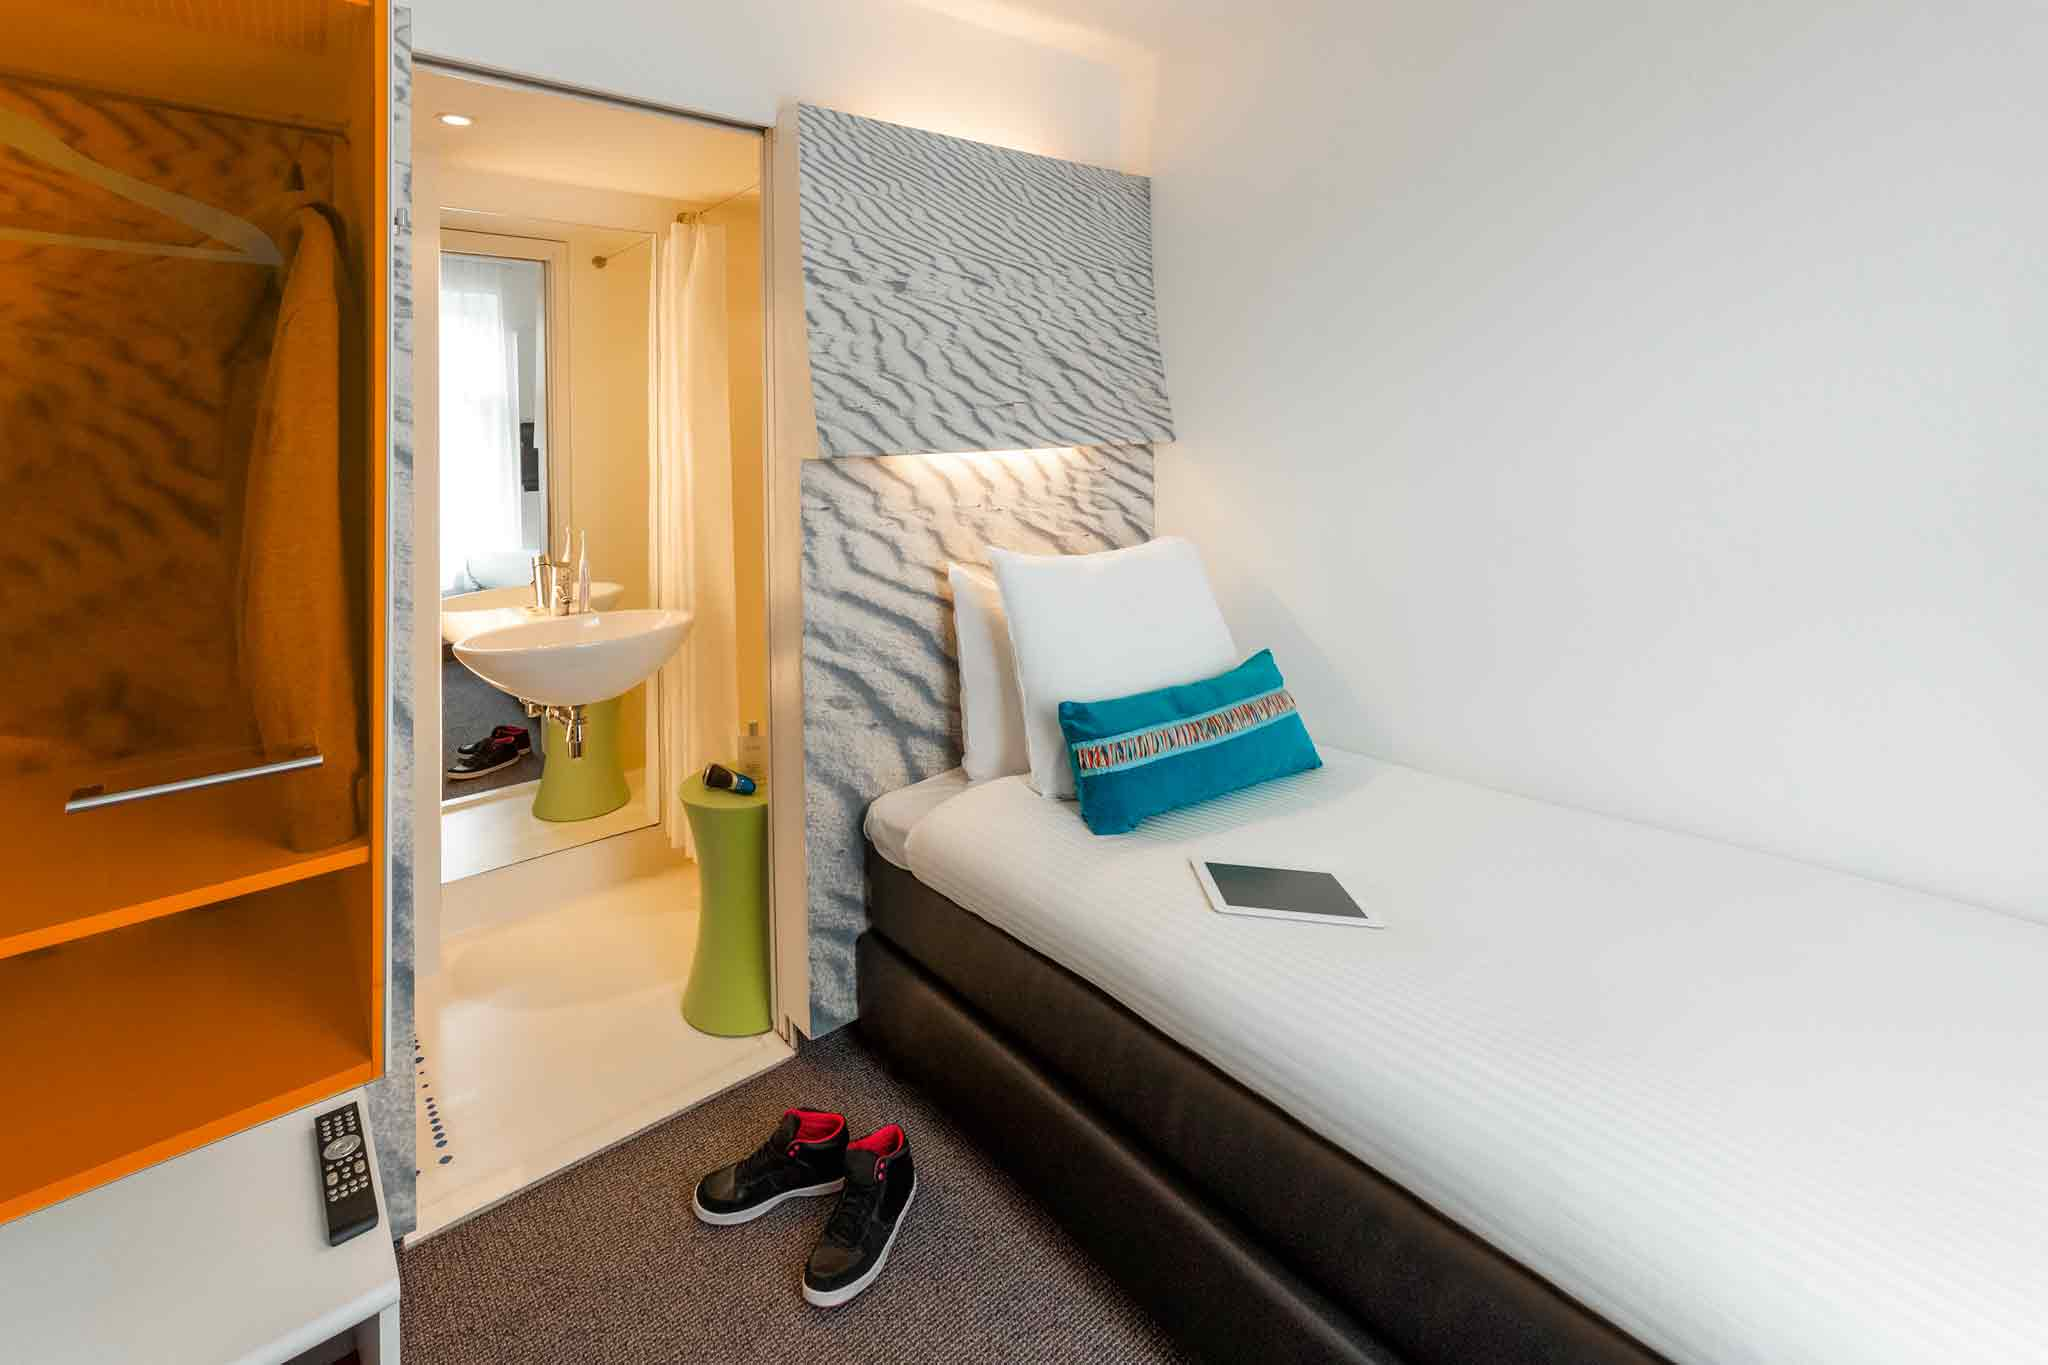 ibis Styles Amsterdam Central Station View of room